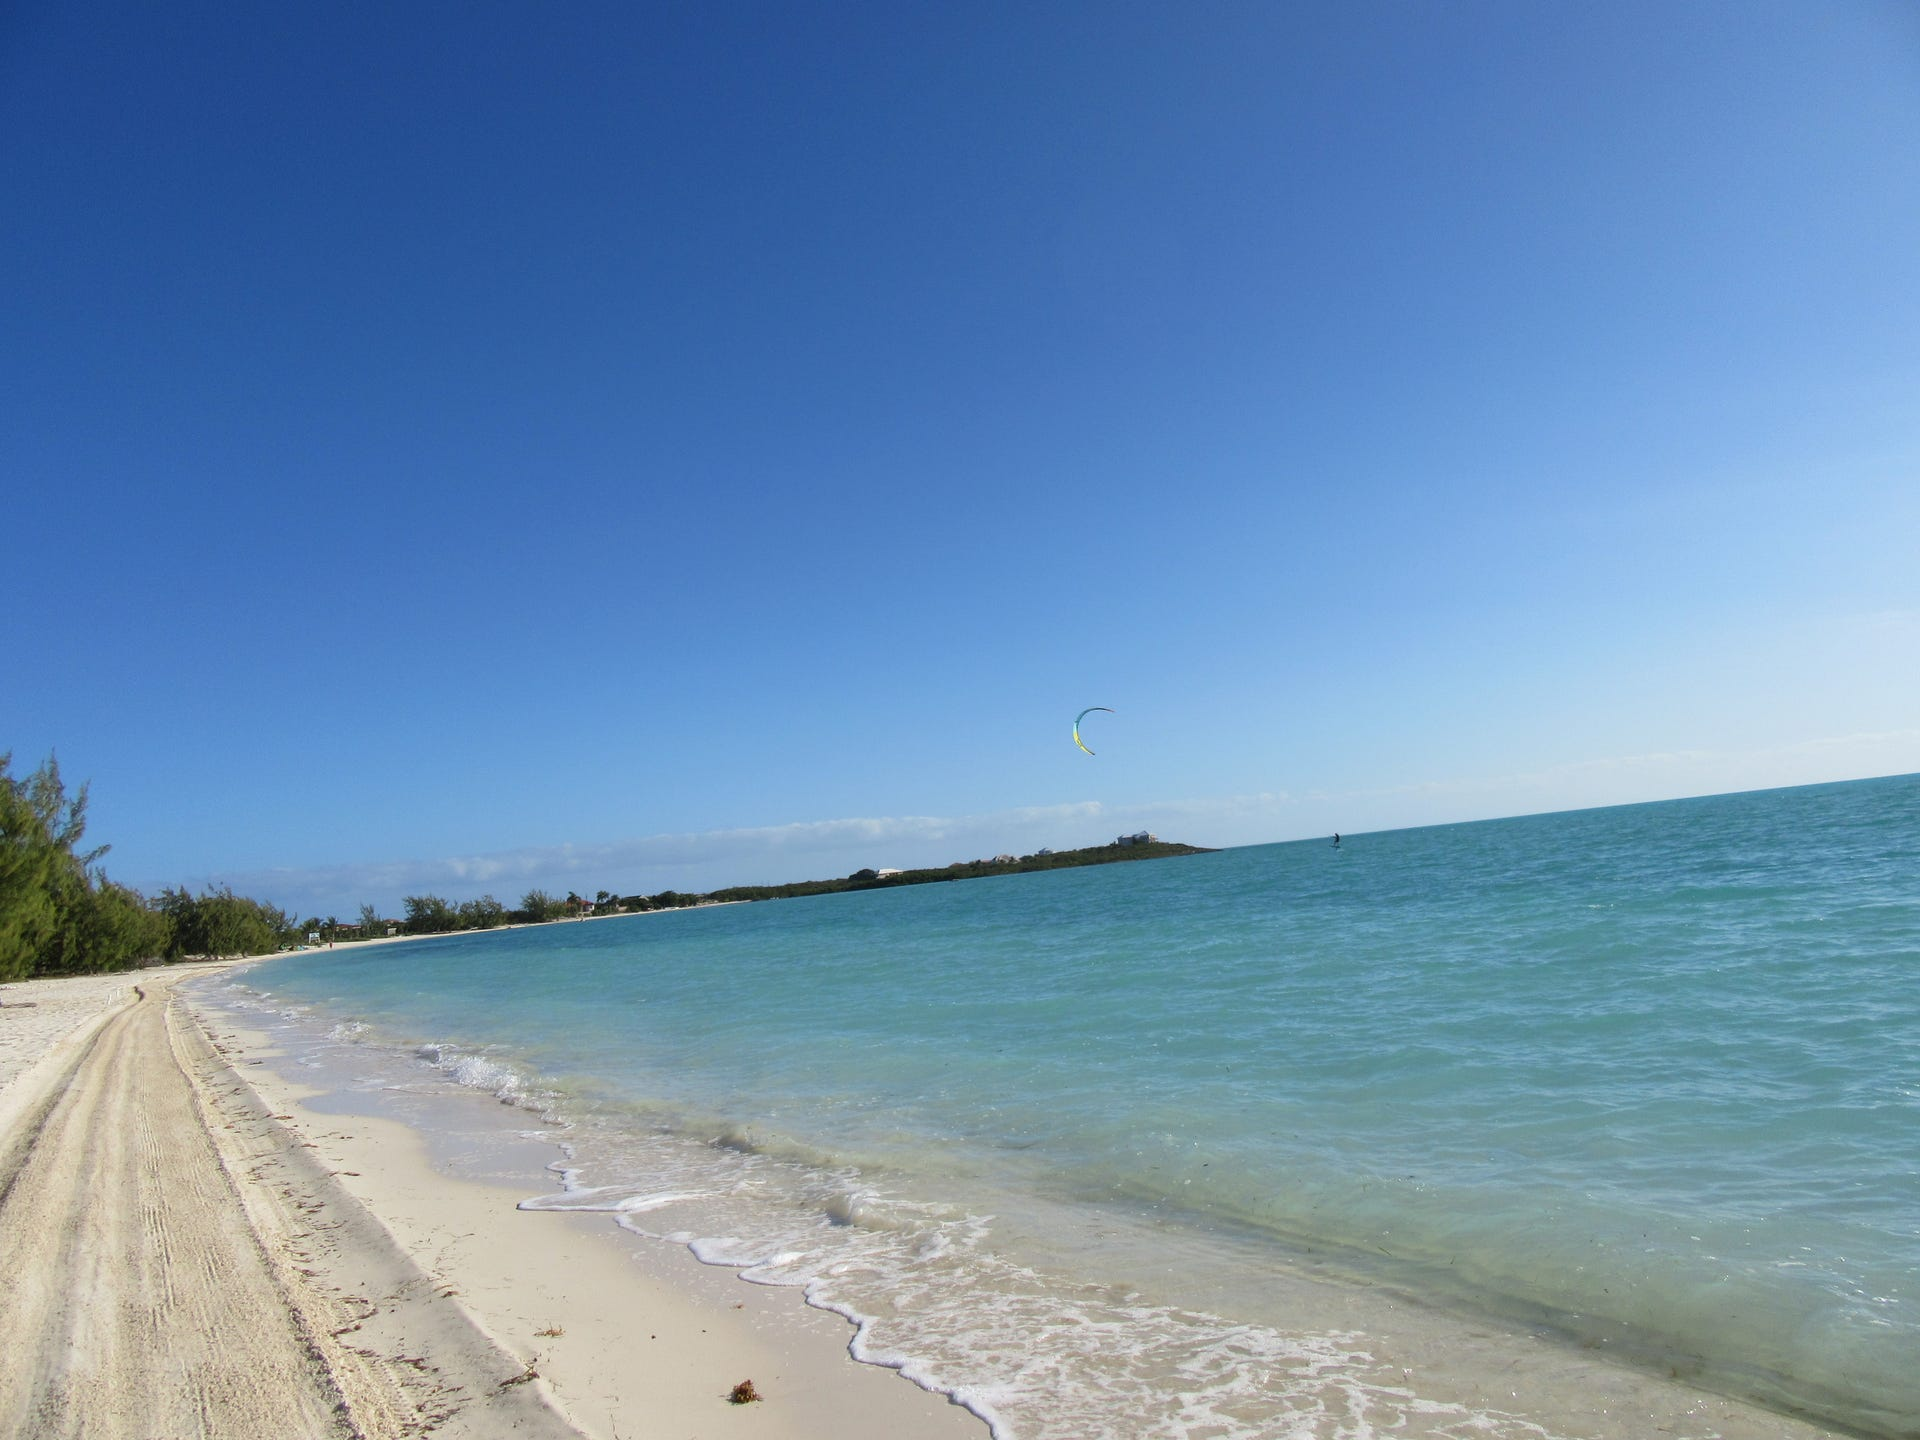 Stretching for 3 miles along the southeast coast of Providenciales on Turks and Caicos, Long Bay Beach is a world away and a short drive from the more popular Grace Bay Beach.